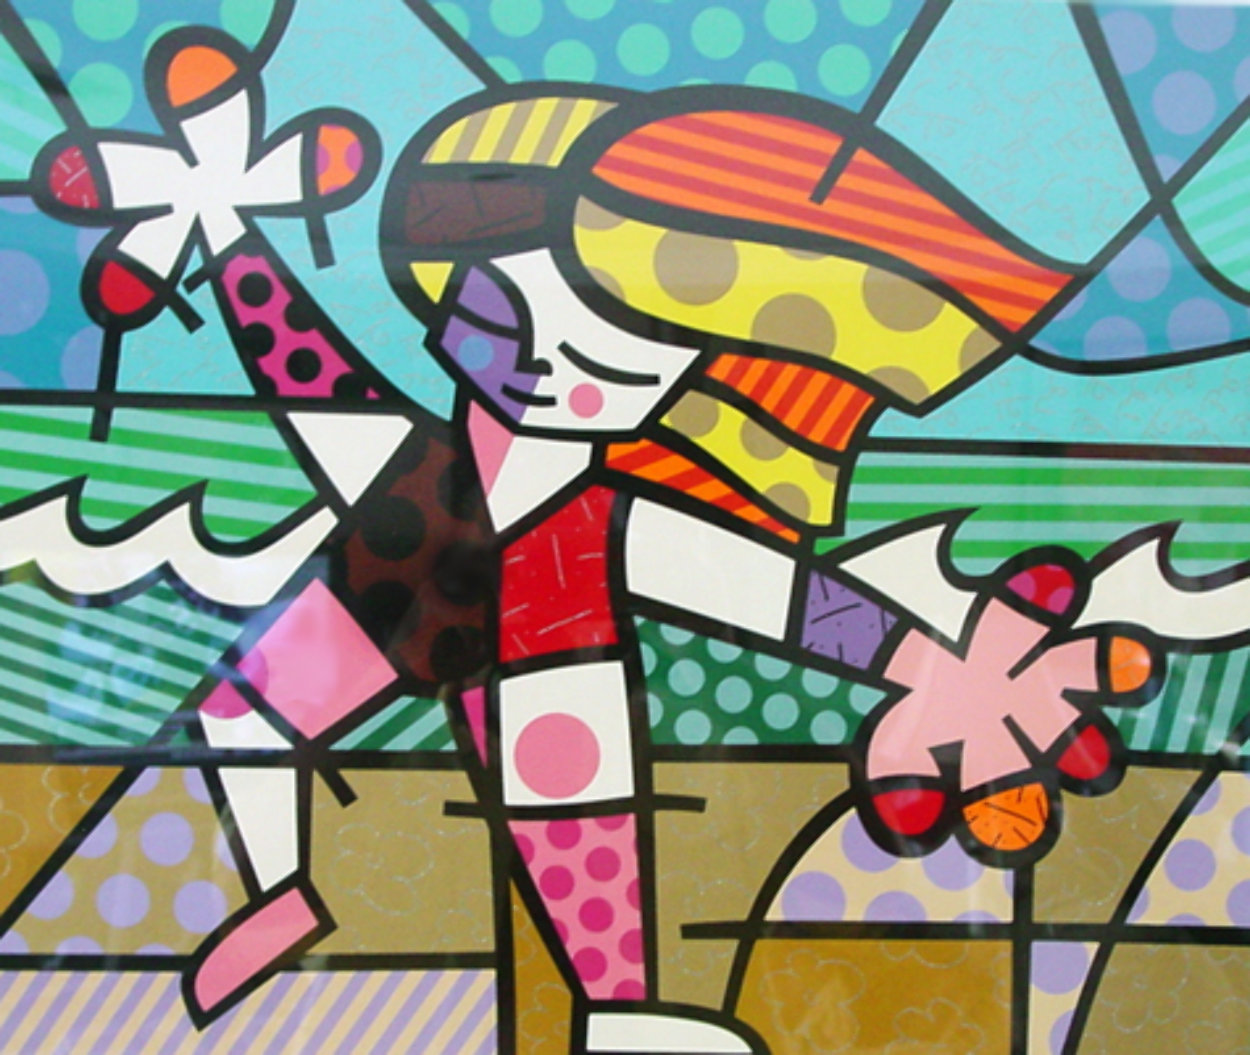 Golden Beaches Limited Edition Print by Romero Britto